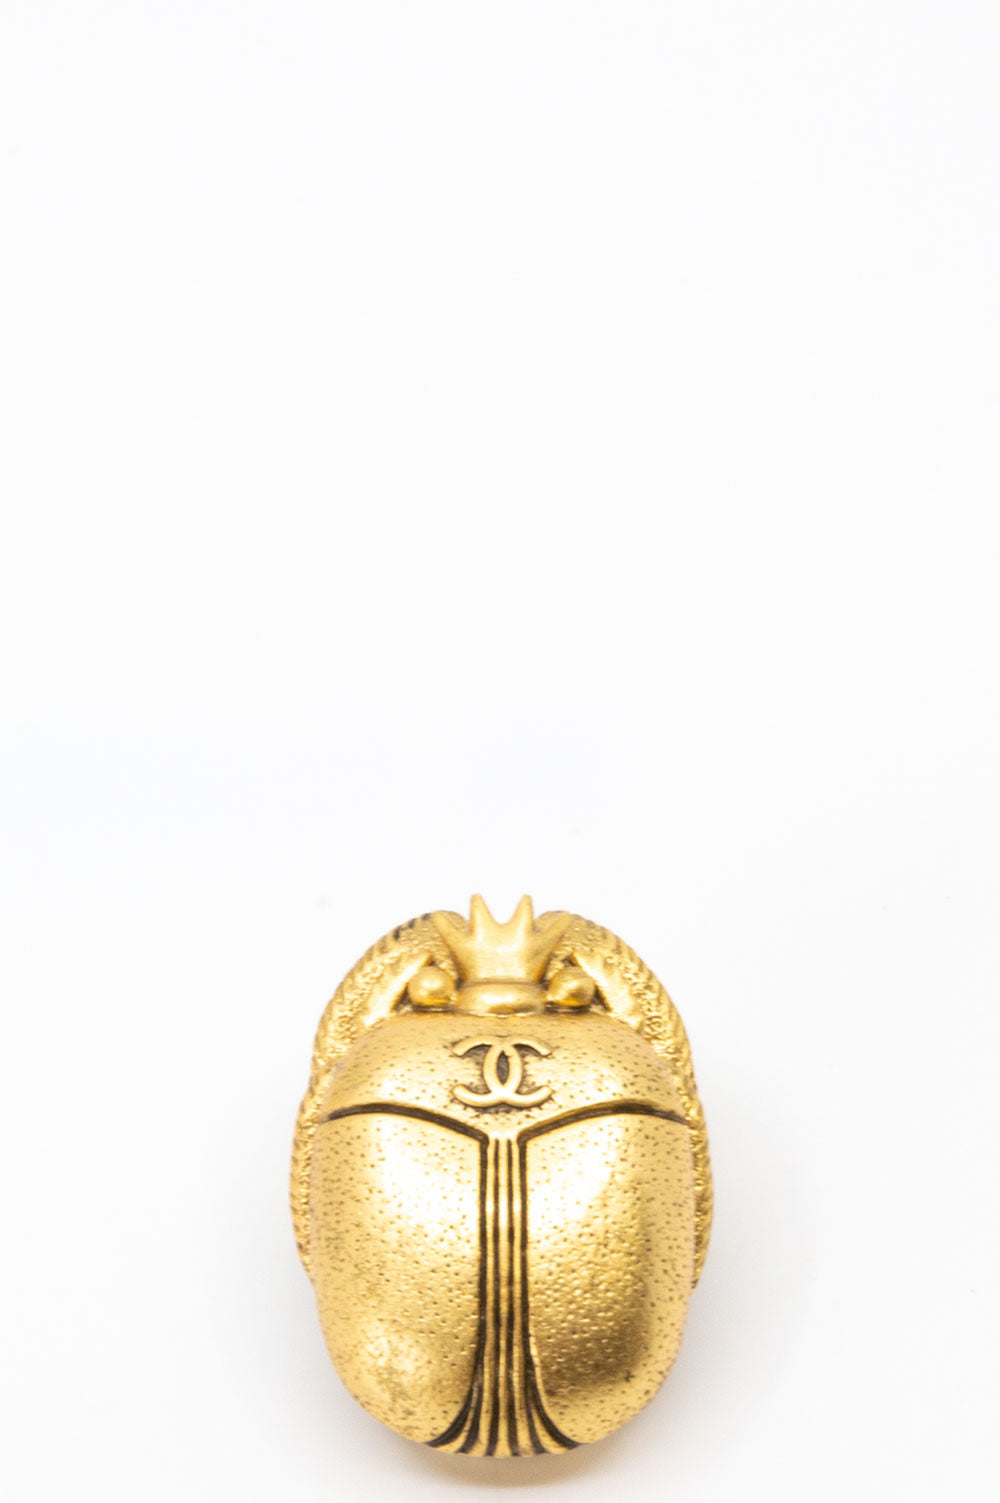 Chanel Scarab Brosche in Gold.